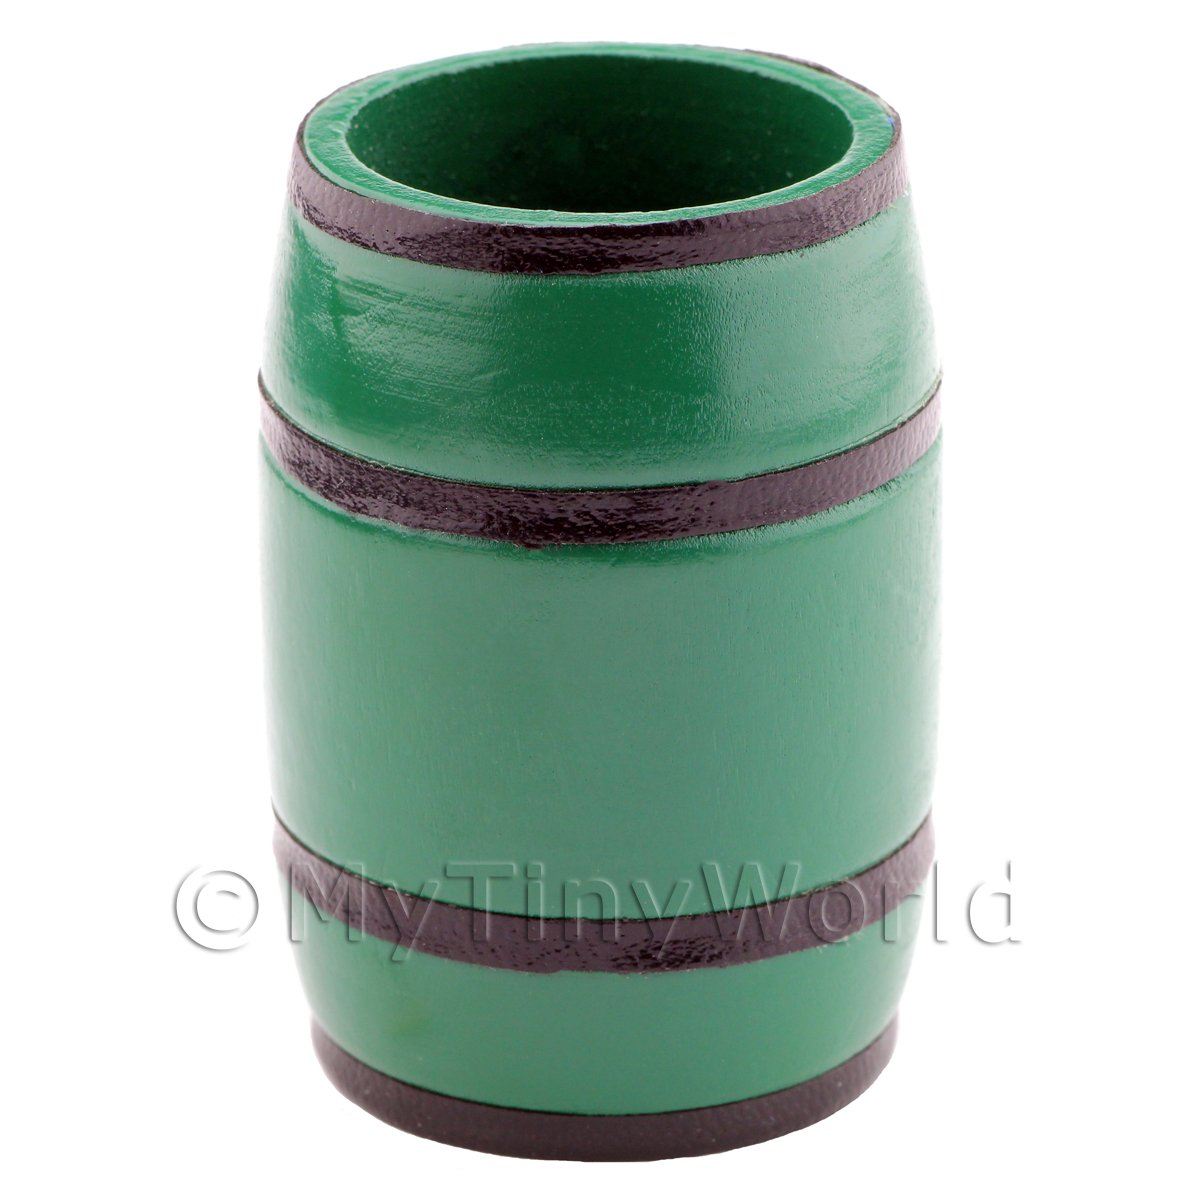 Dolls House Miniature Open Topped Green Wood Barrel / Water Butt